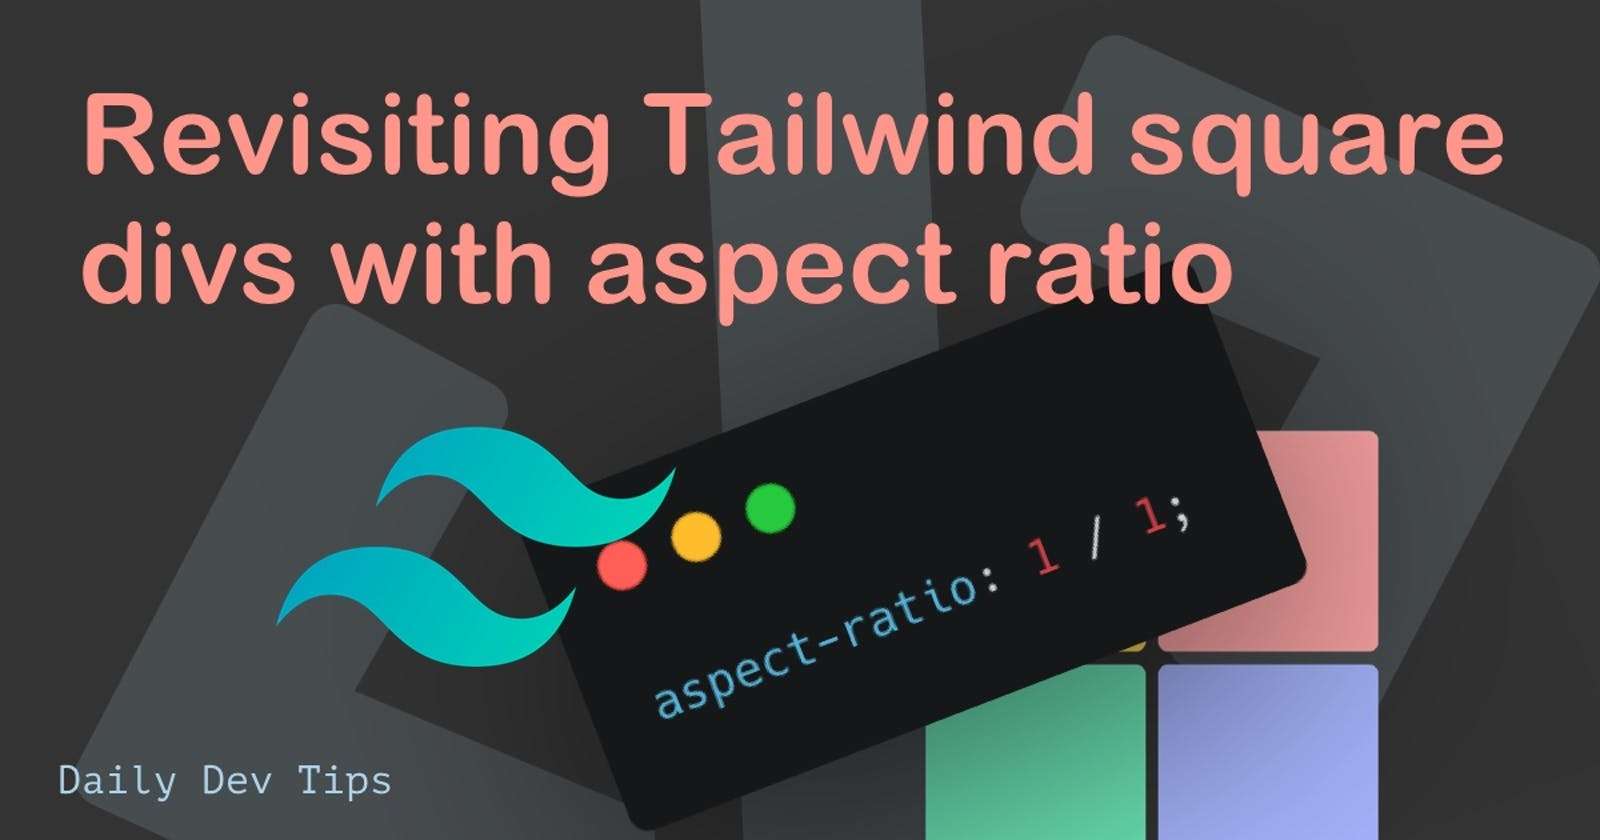 Revisiting Tailwind square divs with aspect ratio